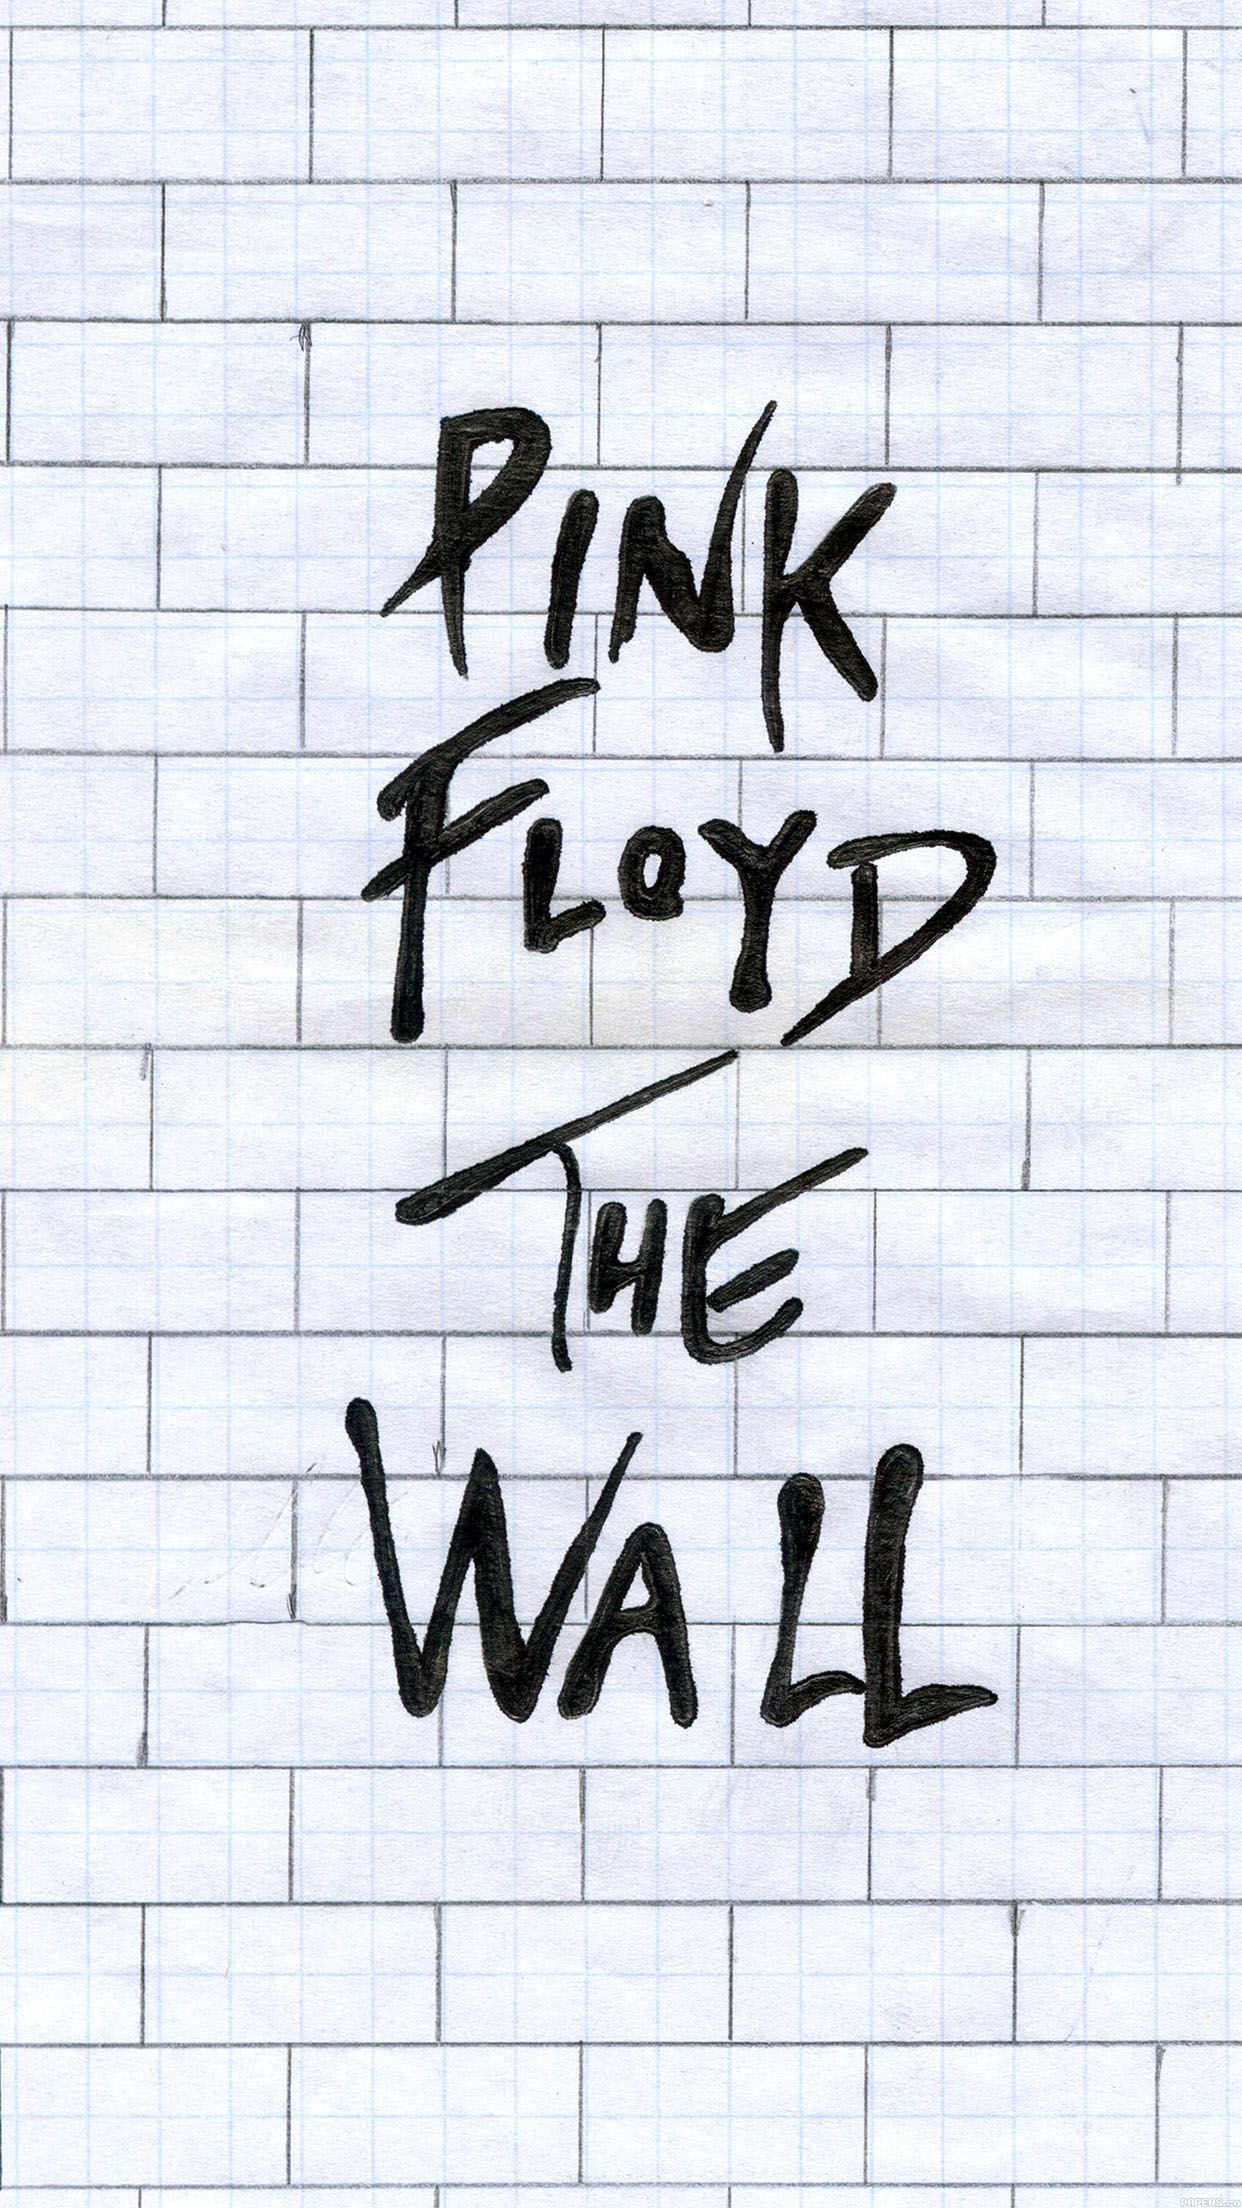 wallpaper-pink-floyd-the-wall-album ...